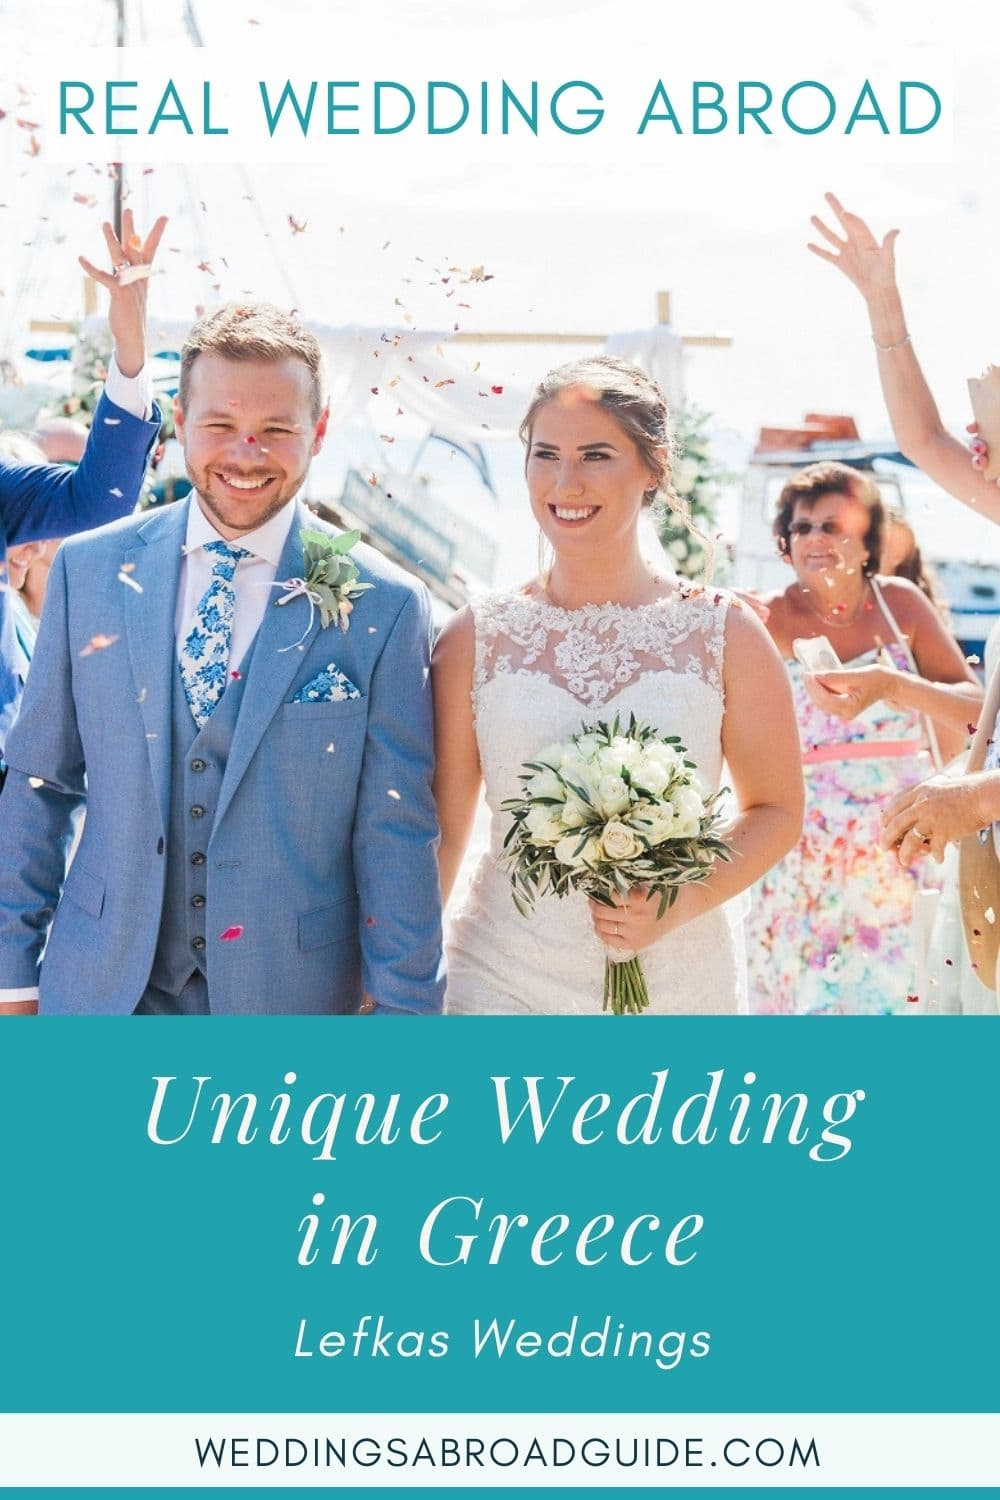 Intimate Real Wedding Abroad in Greece | Planned by Lefkas Weddings | Maxeen Kim Photography